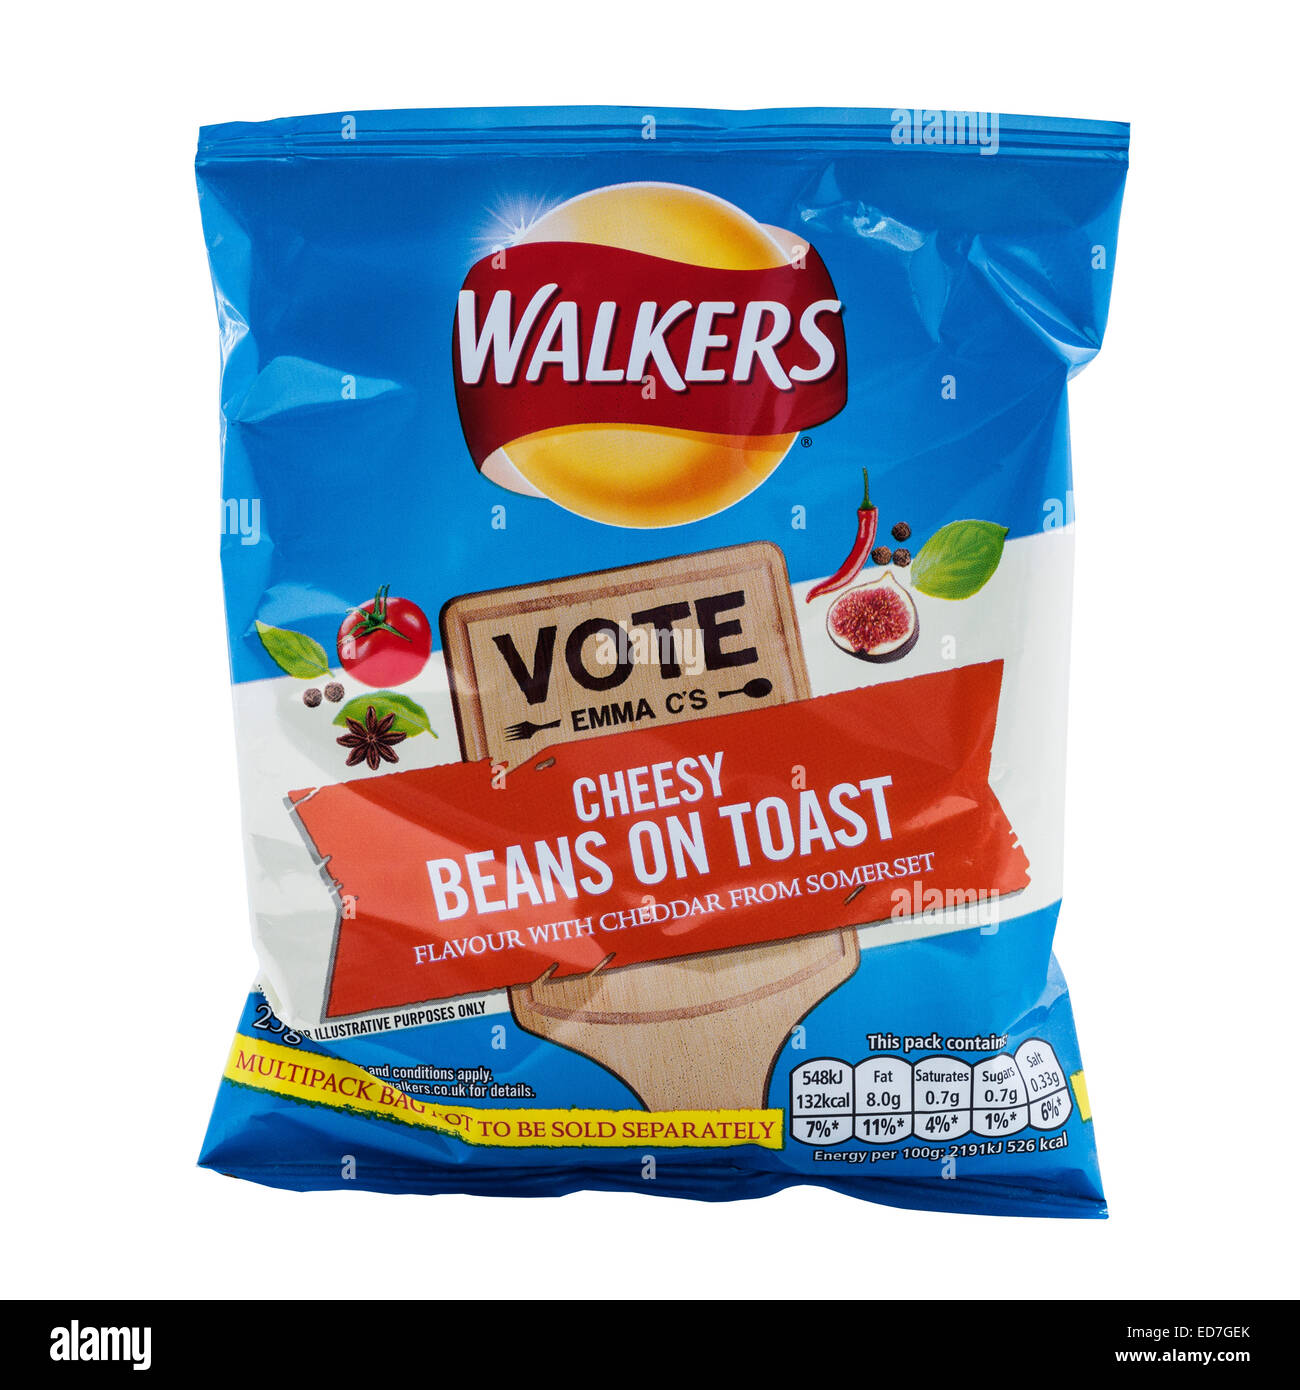 walkers crisps Learn about working at walkers crisps limited join linkedin today for free see who you know at walkers crisps limited, leverage your professional network, and.